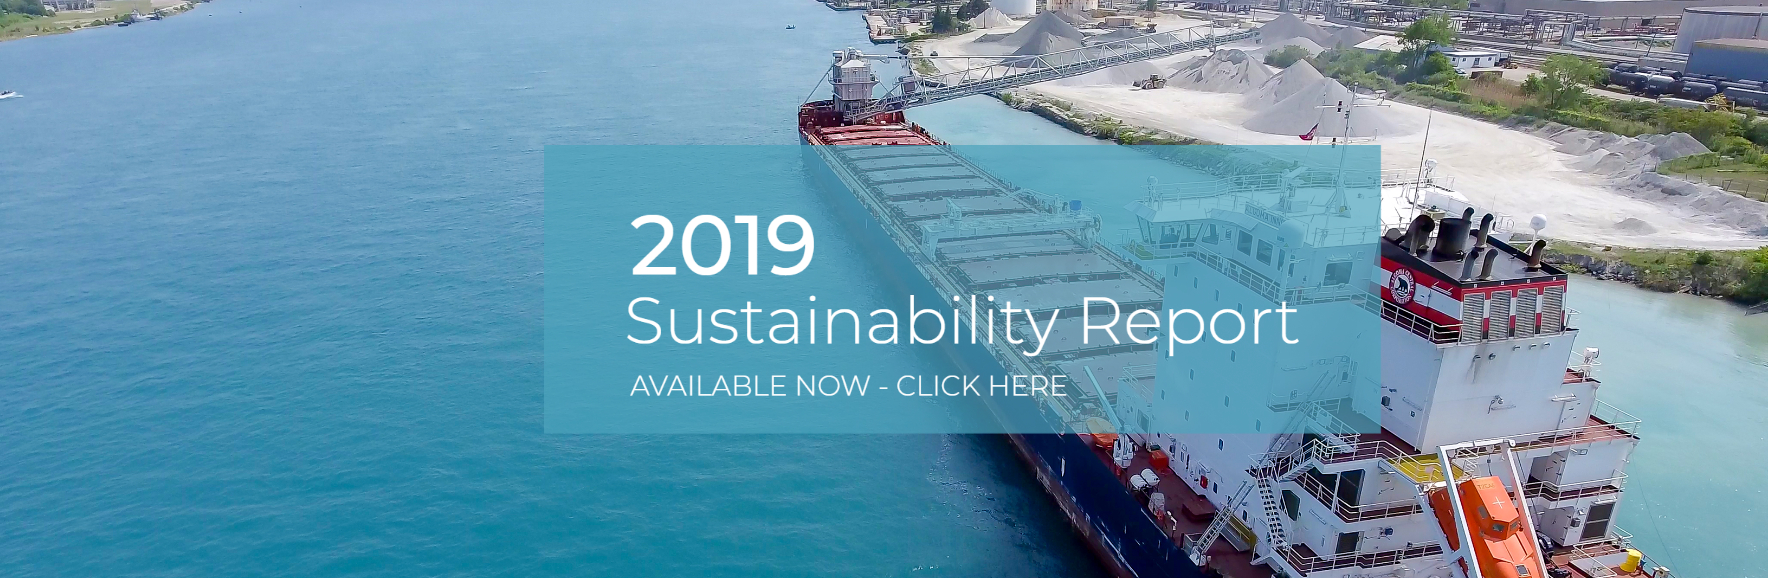 2019 Sustainability Report Post – Banner Desktop